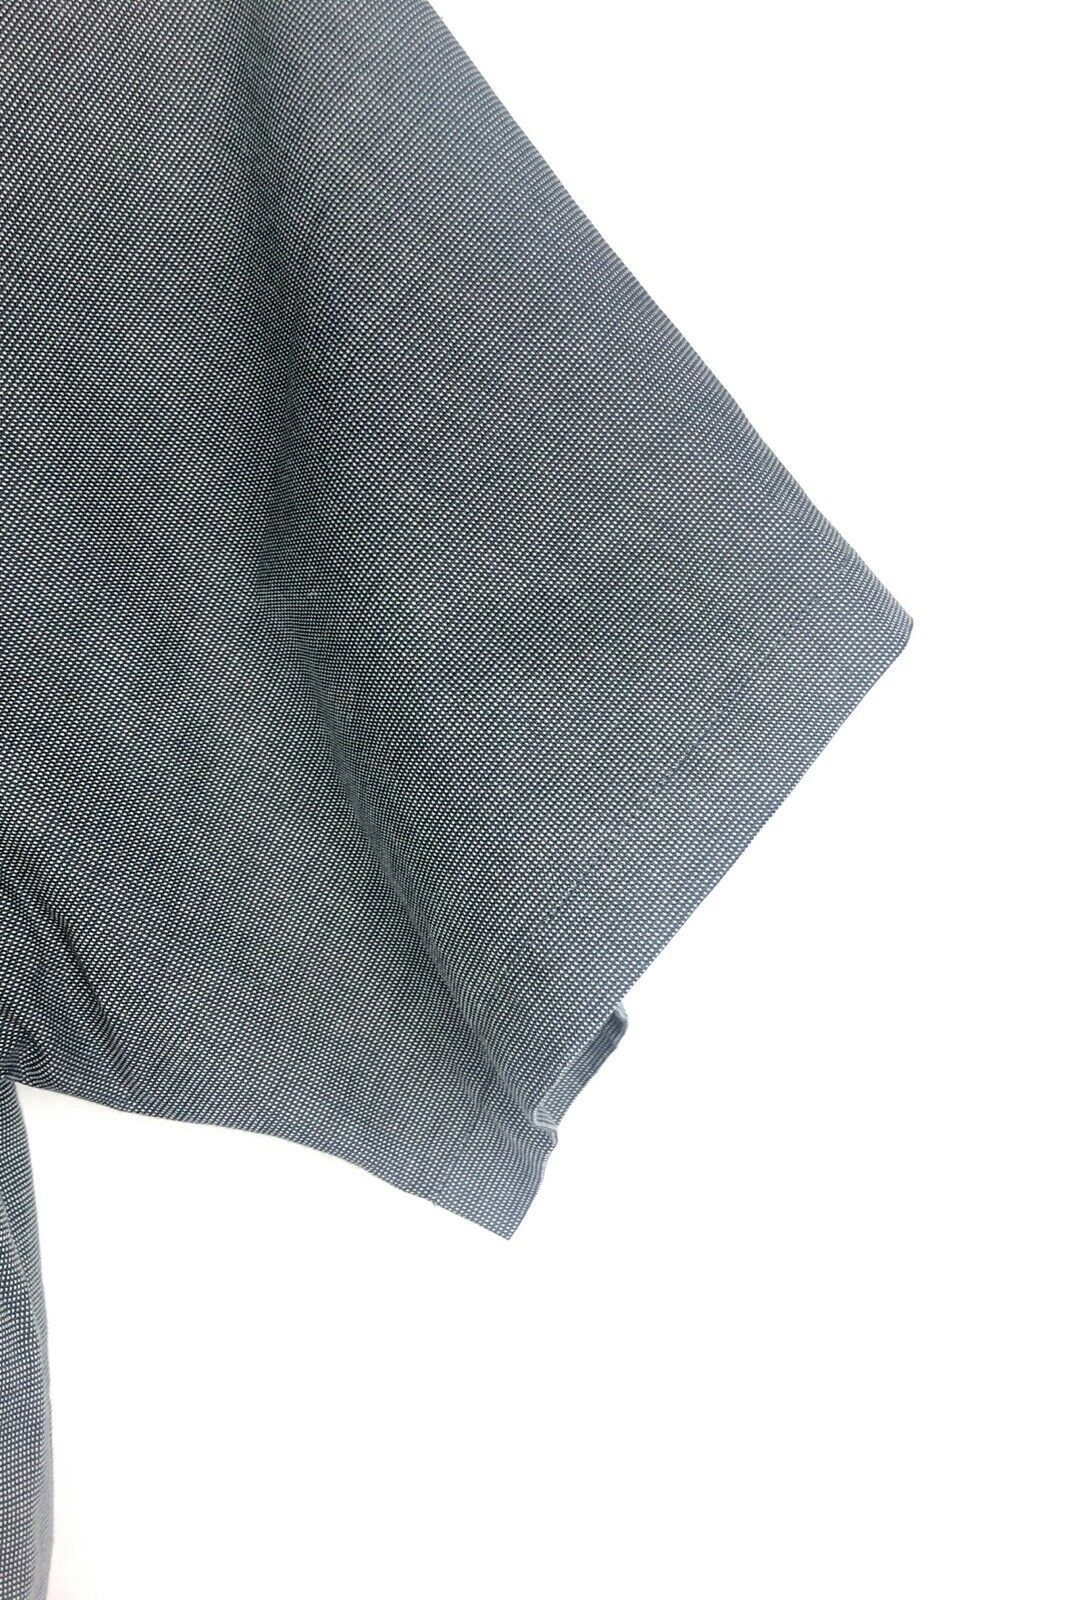 Cutter Buck Shirt Men's 2XT Grey Micro Plaid Long Sleeve Button Front Oxford  image 4